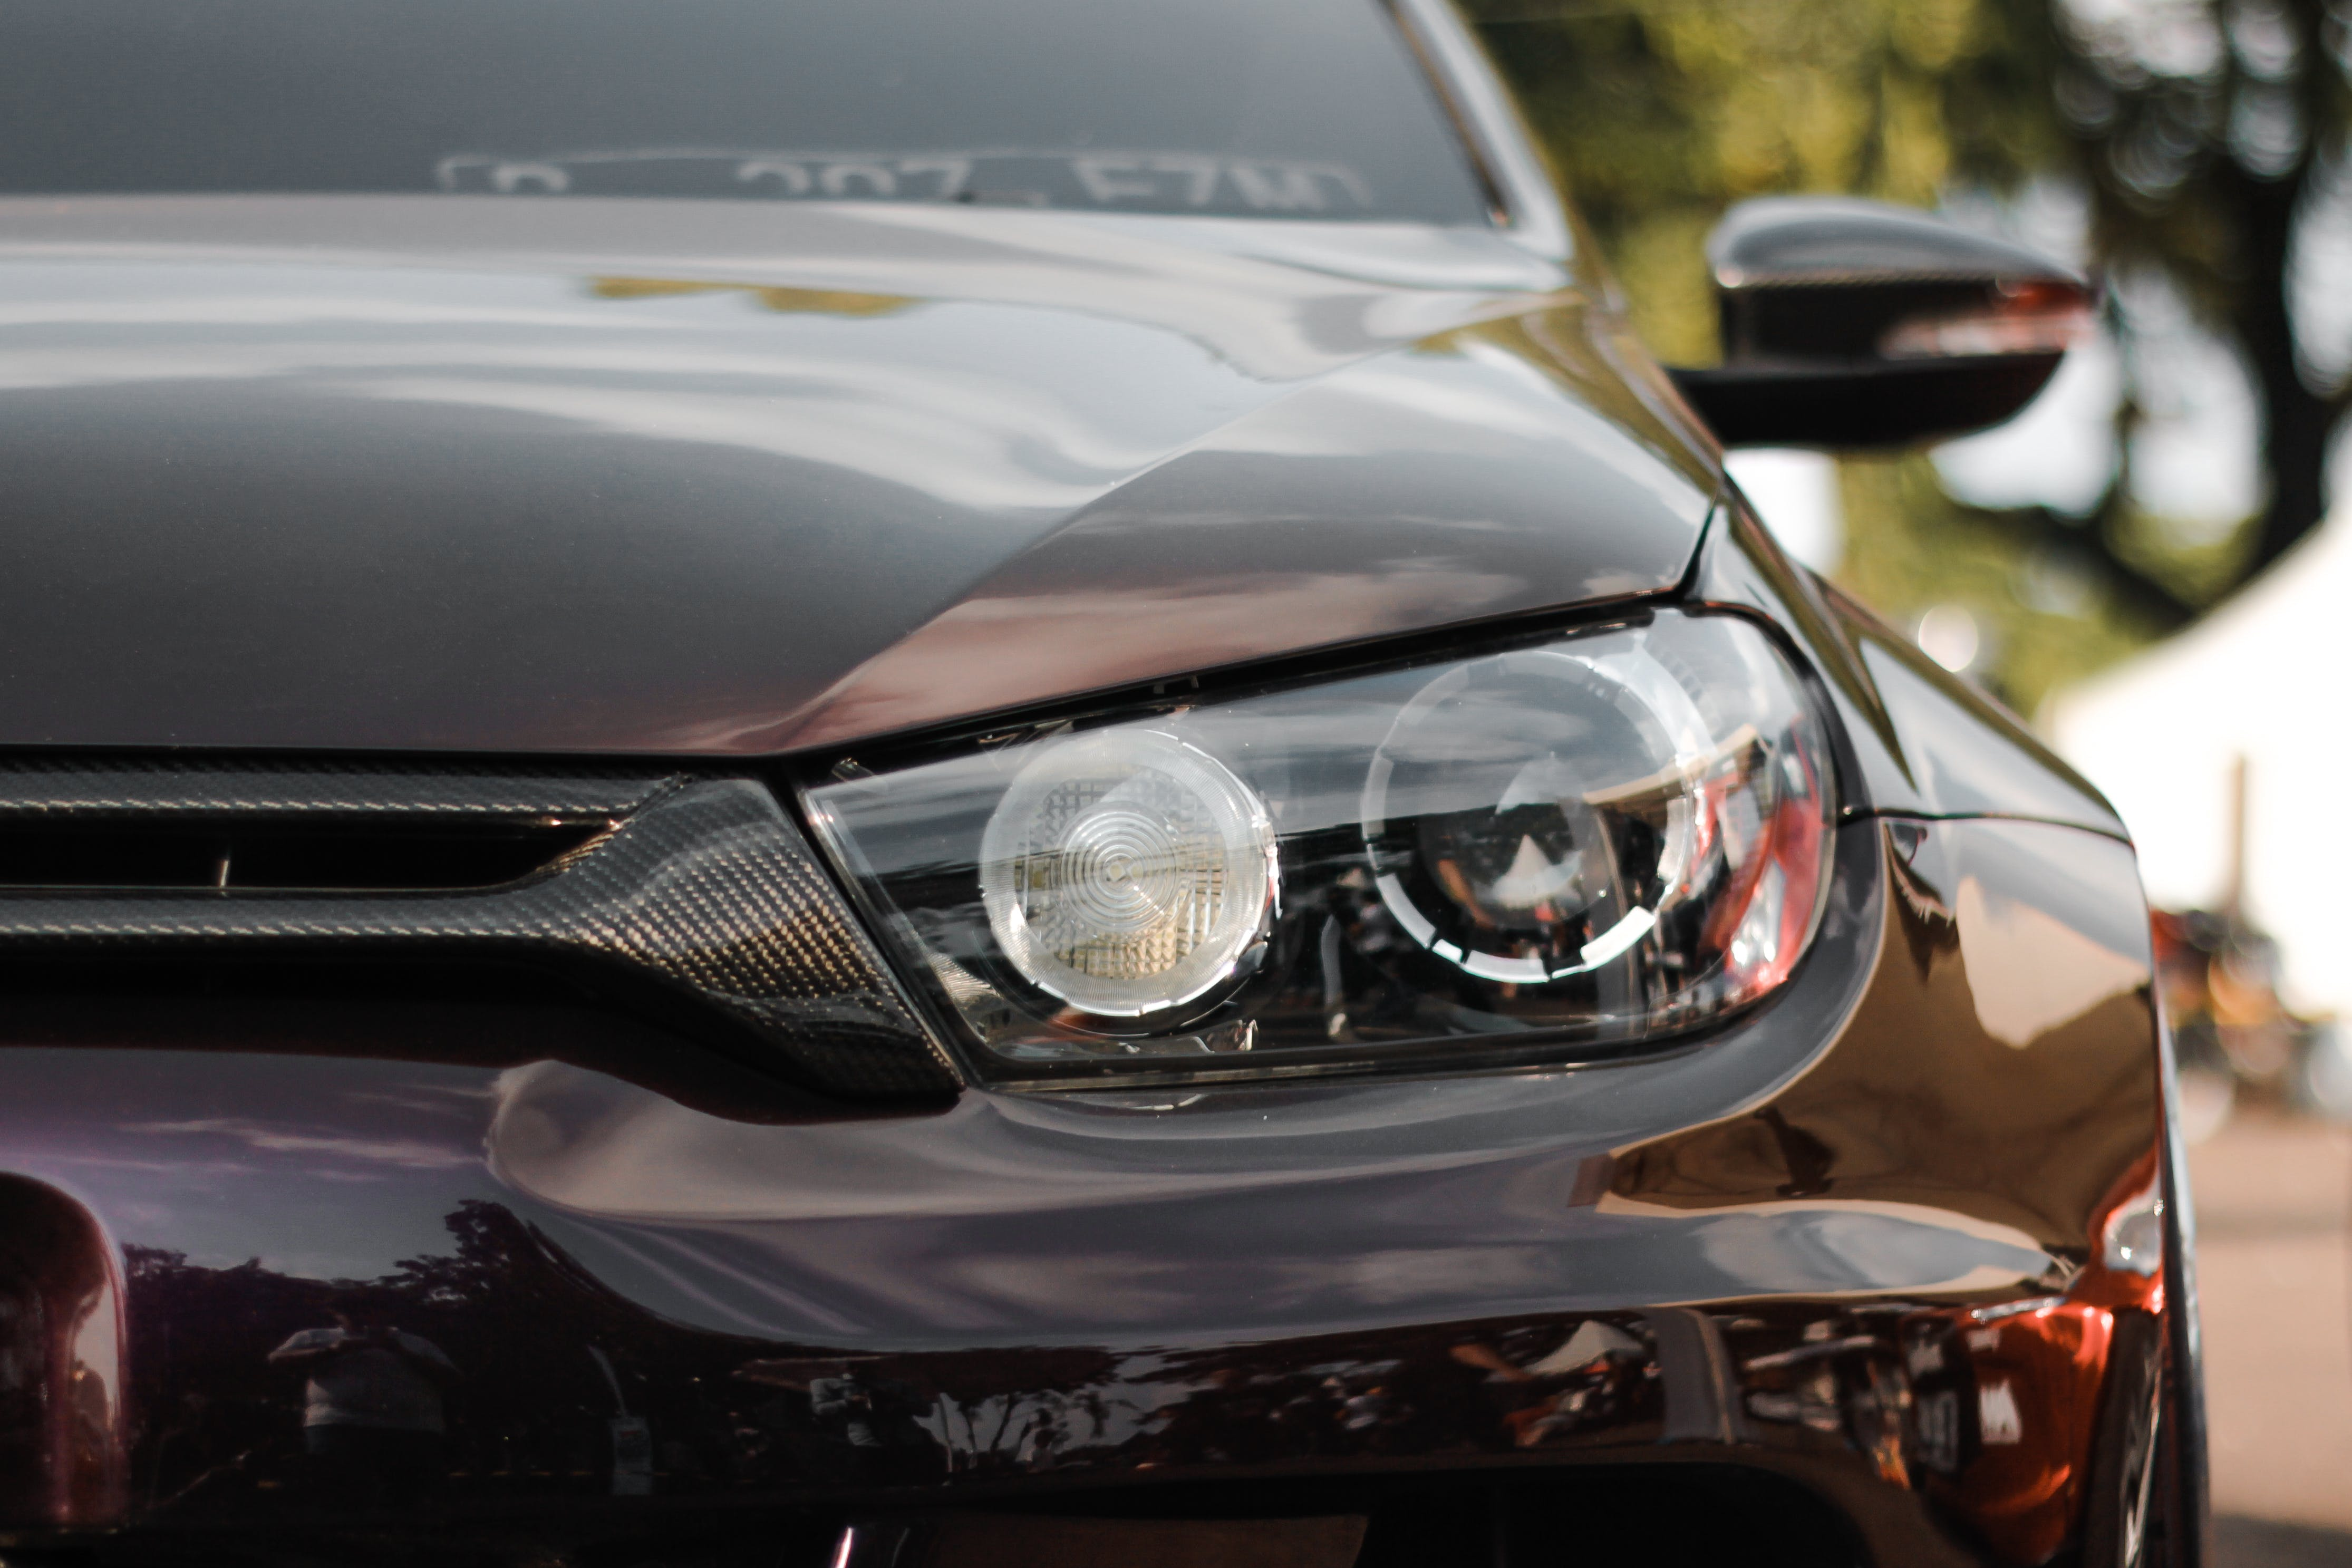 Close-Up Photography of Headlight